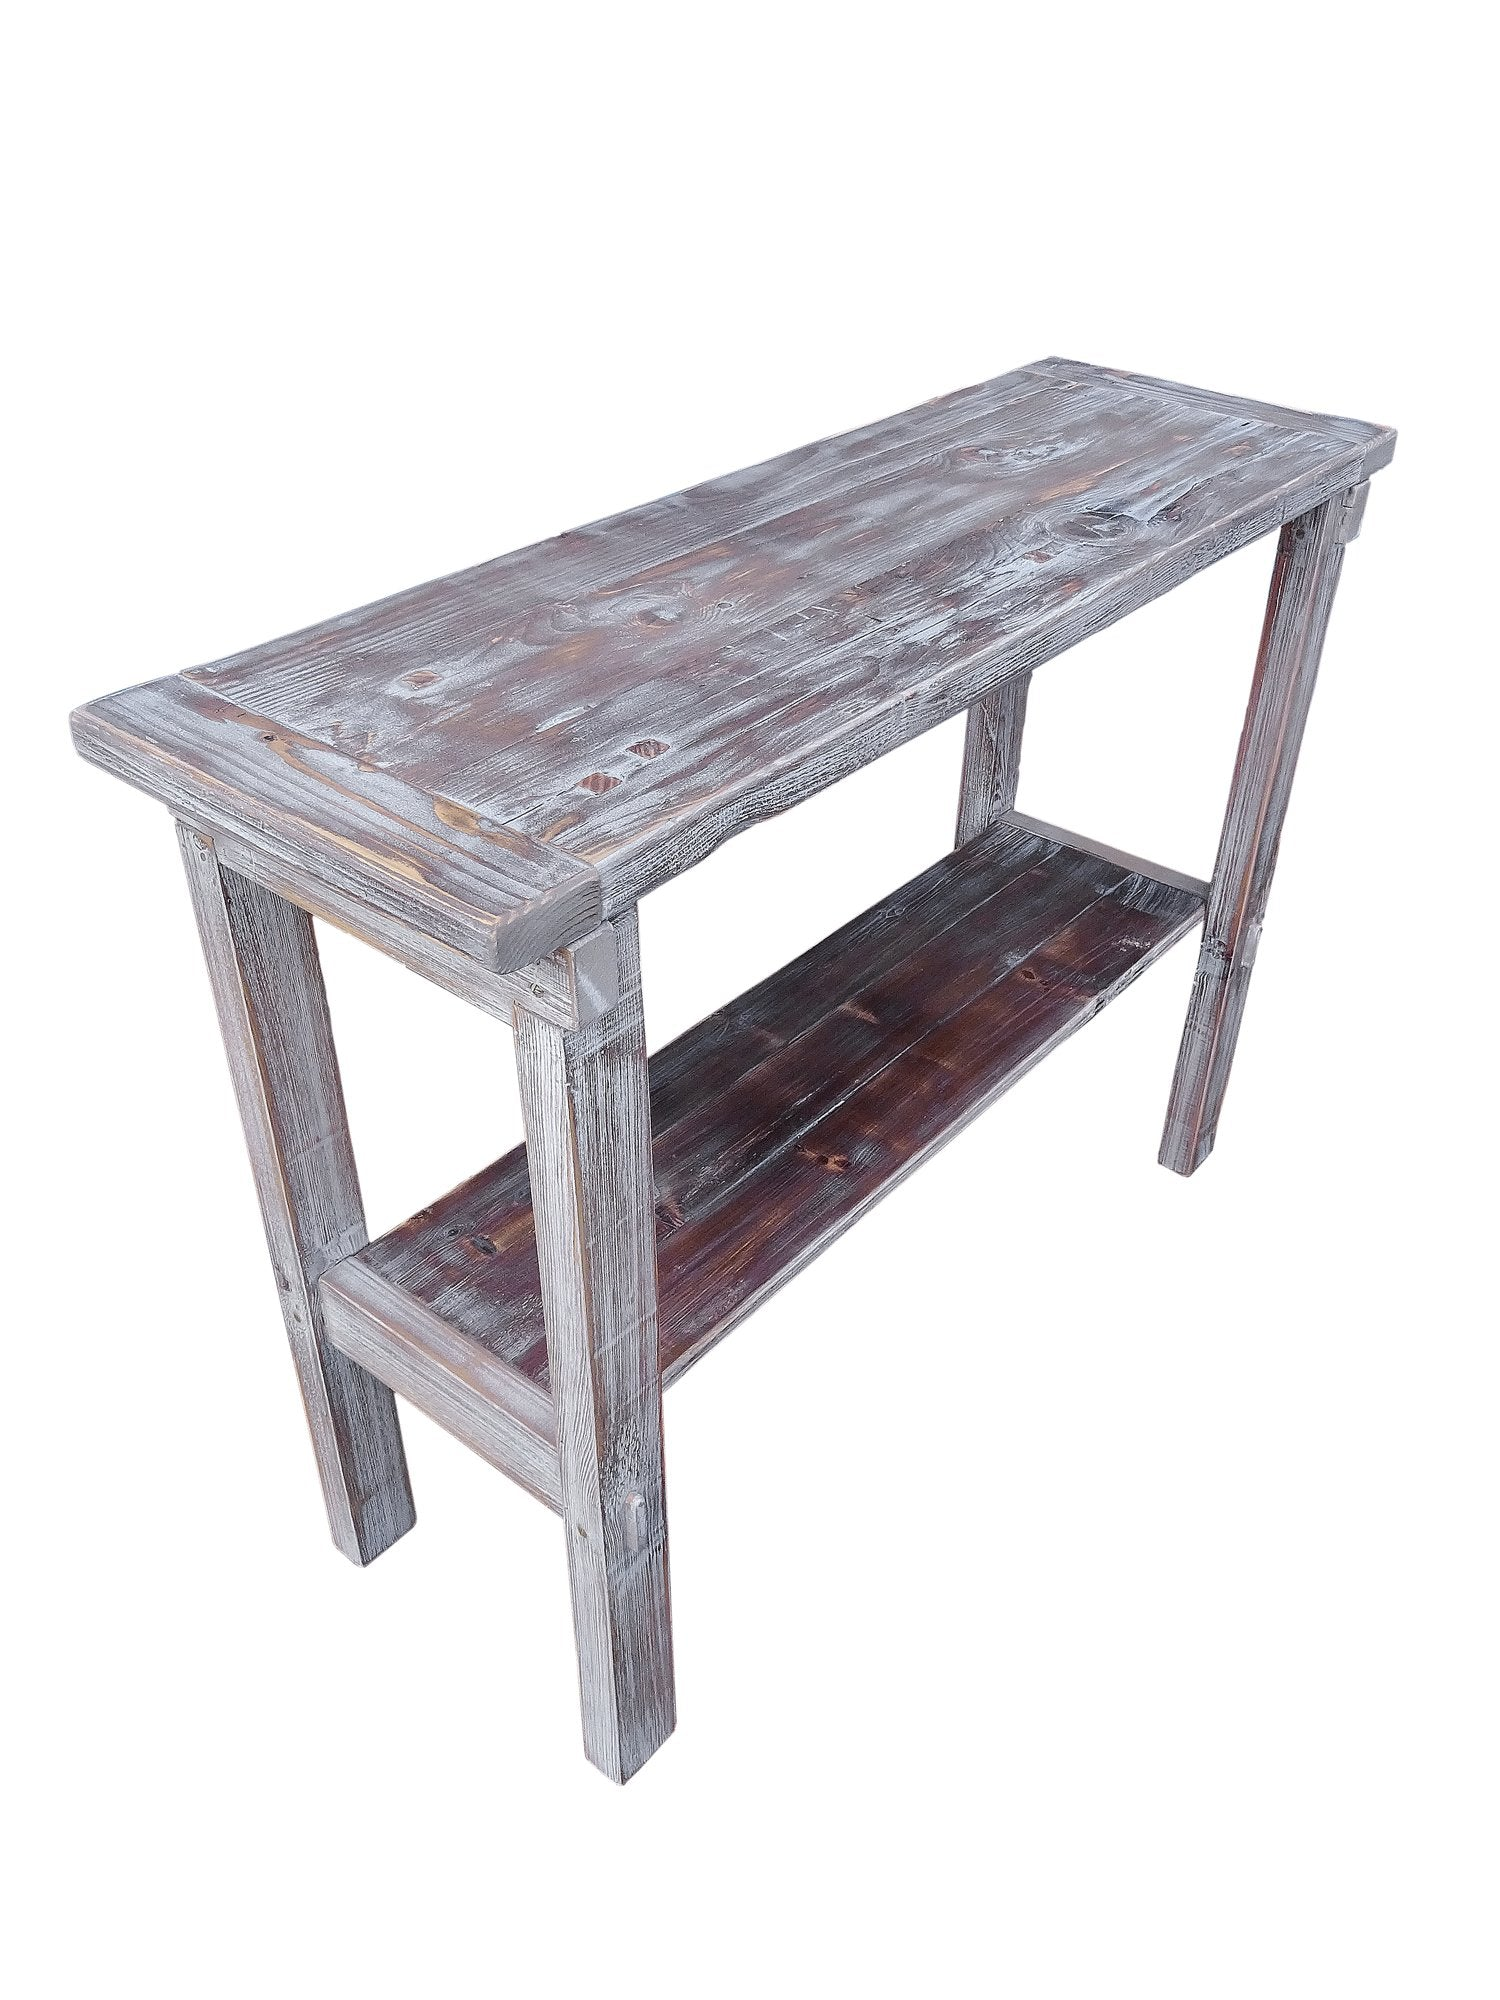 ... Reclaimed Distressed Pine Wood Whitewashed Console Side Table By Darvo  ...